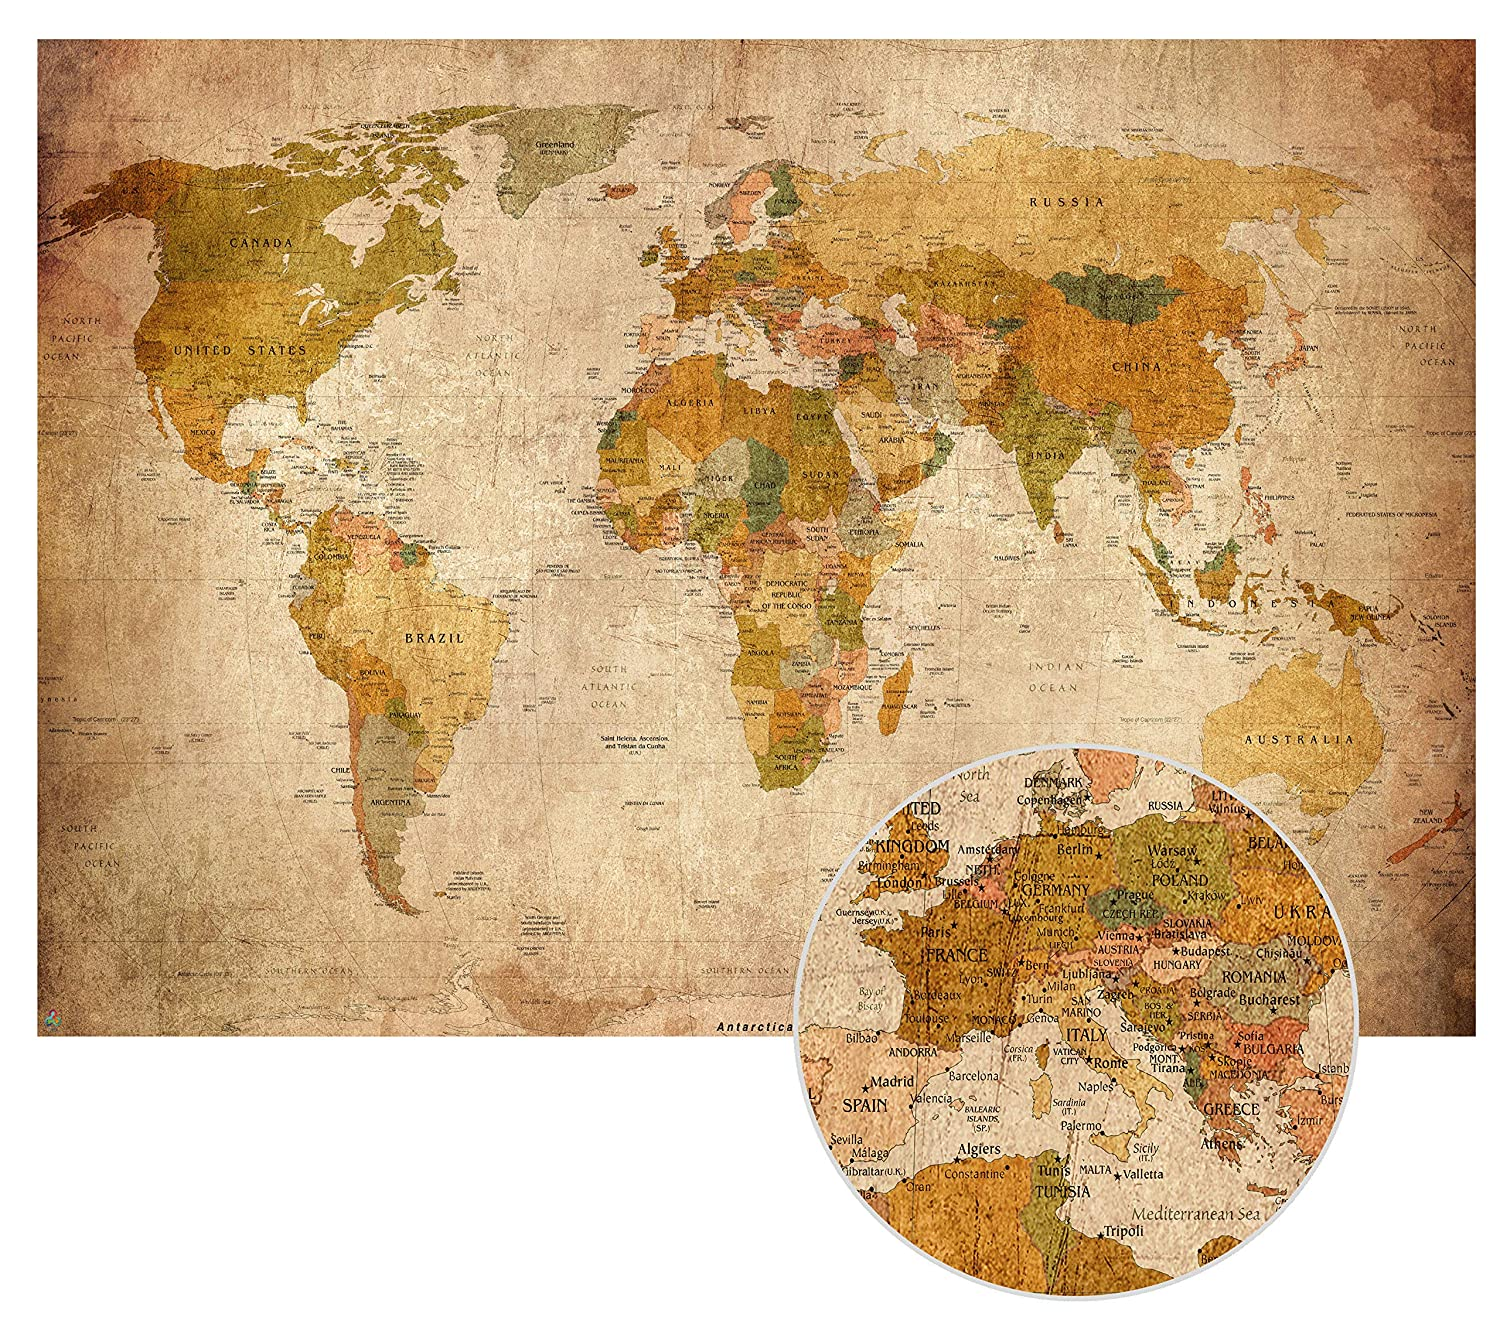 Old World Map in Vintage look XXL Wall Art in HD Poster 140cm x 100 cm  Retro Wall Decoration Worldmap image can be used as a pinboard | Canvas map  ...